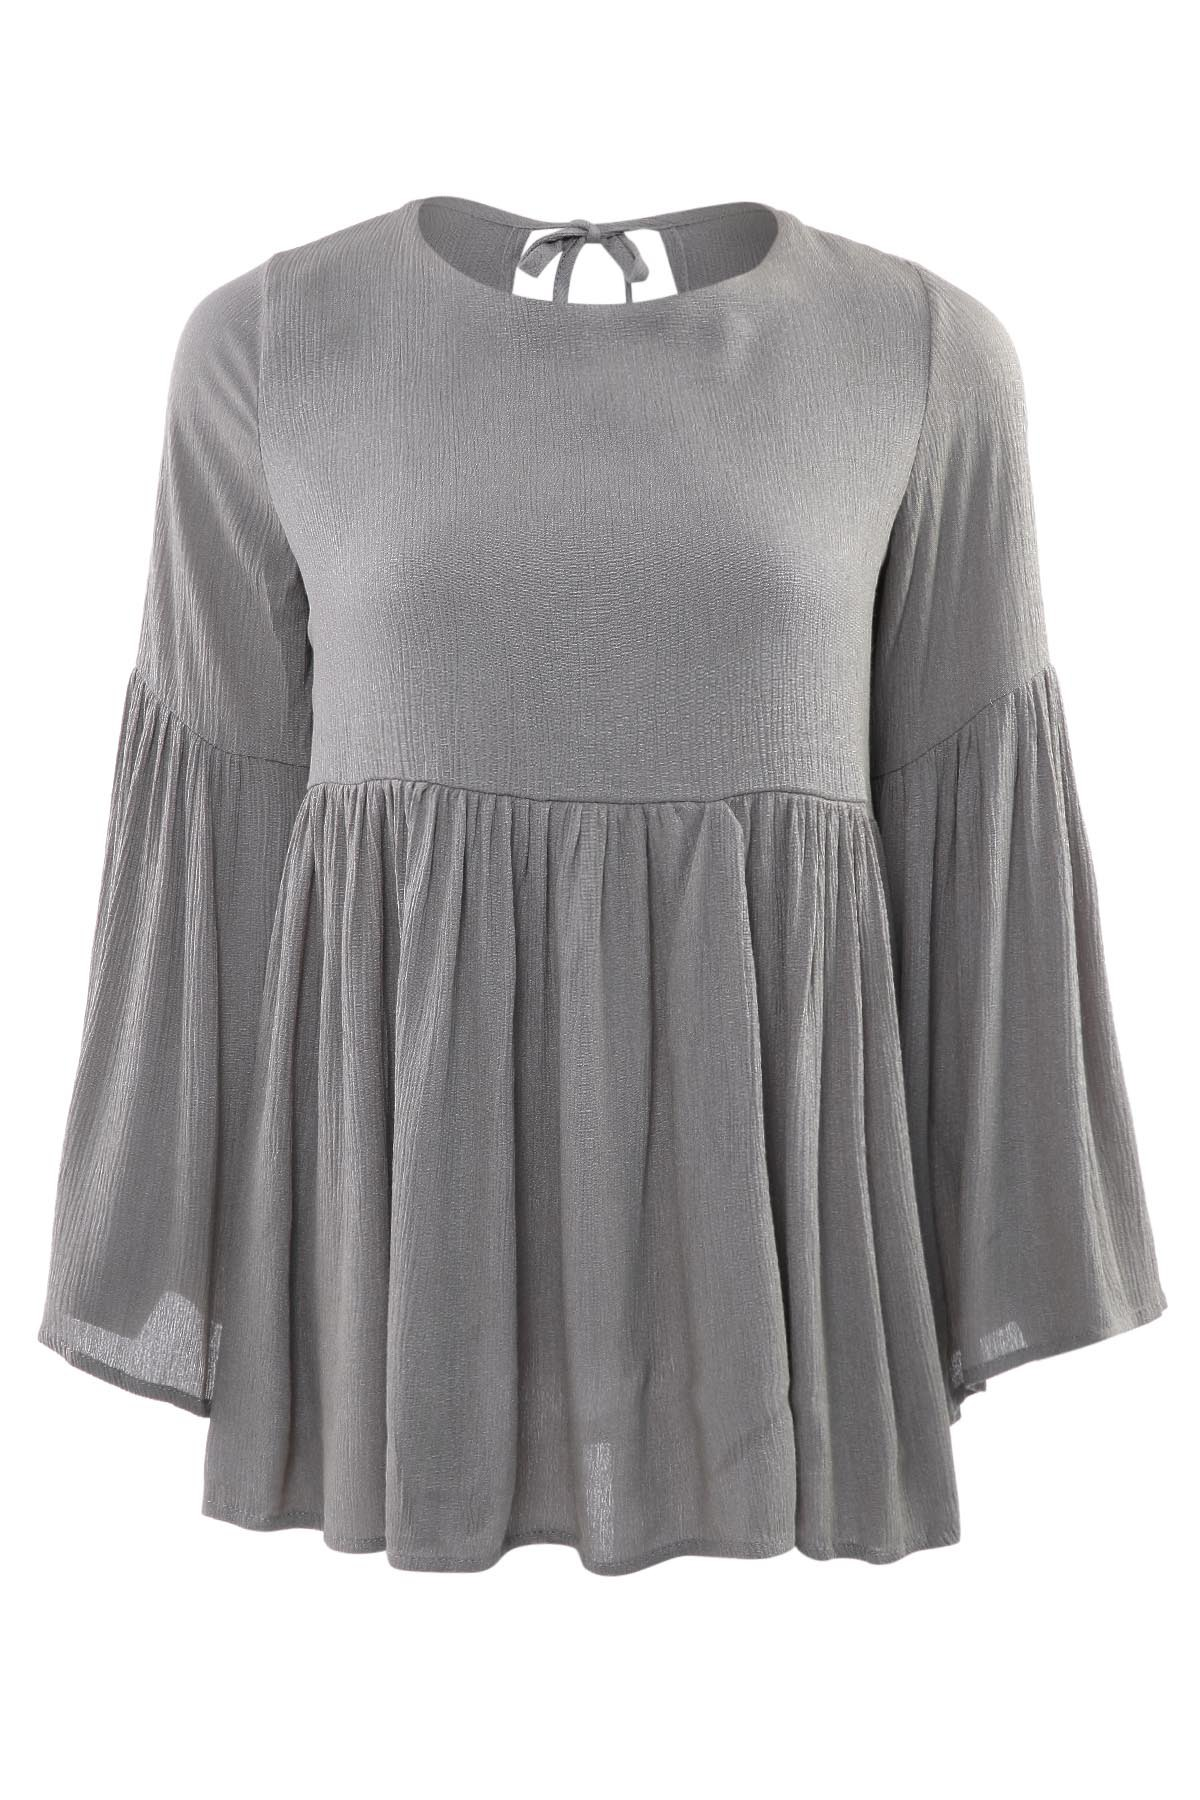 Find great deals on eBay for ruffle long sleeve blouse. Shop with confidence.